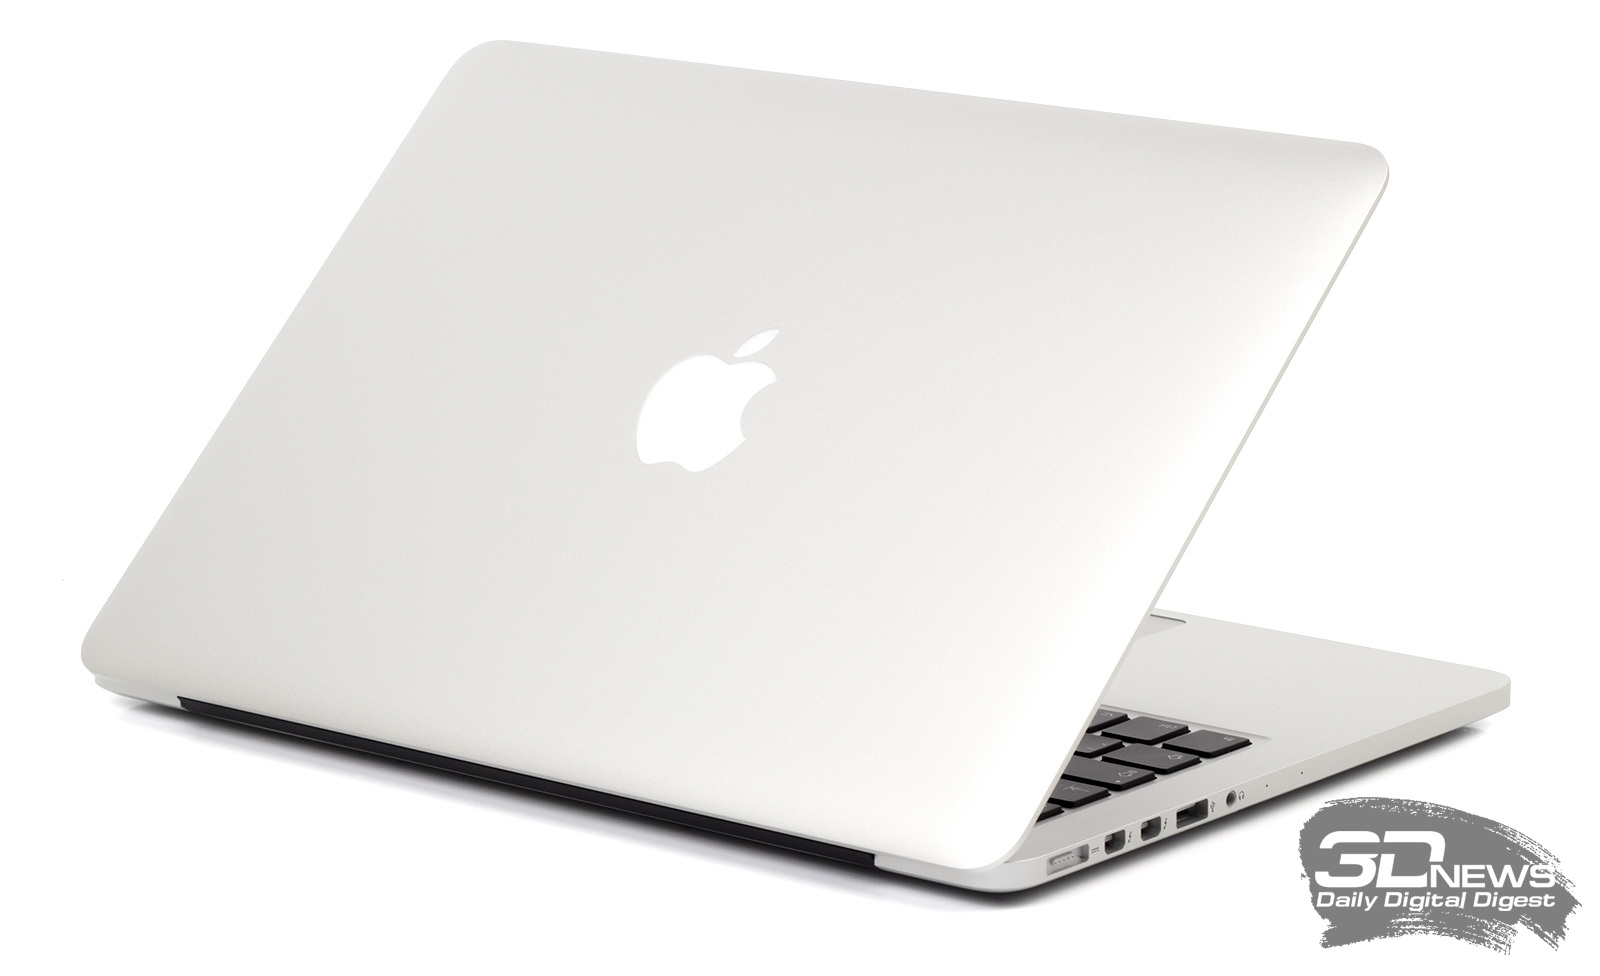 MacBook Pro (15-inch, Mid 2010) - Technical Specifications